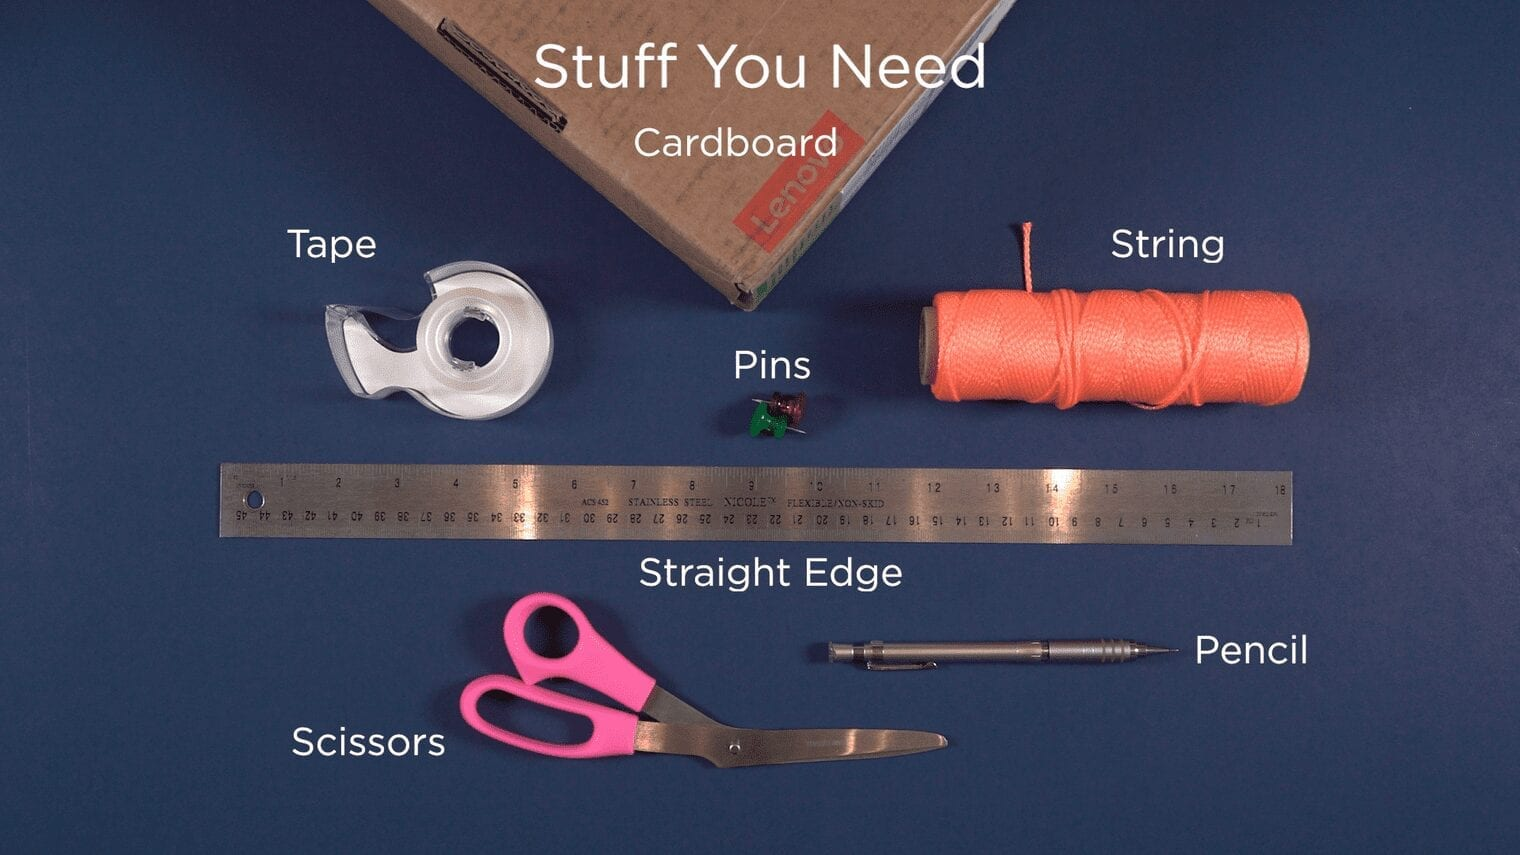 HEX - Stuff you Need - supplies for the project